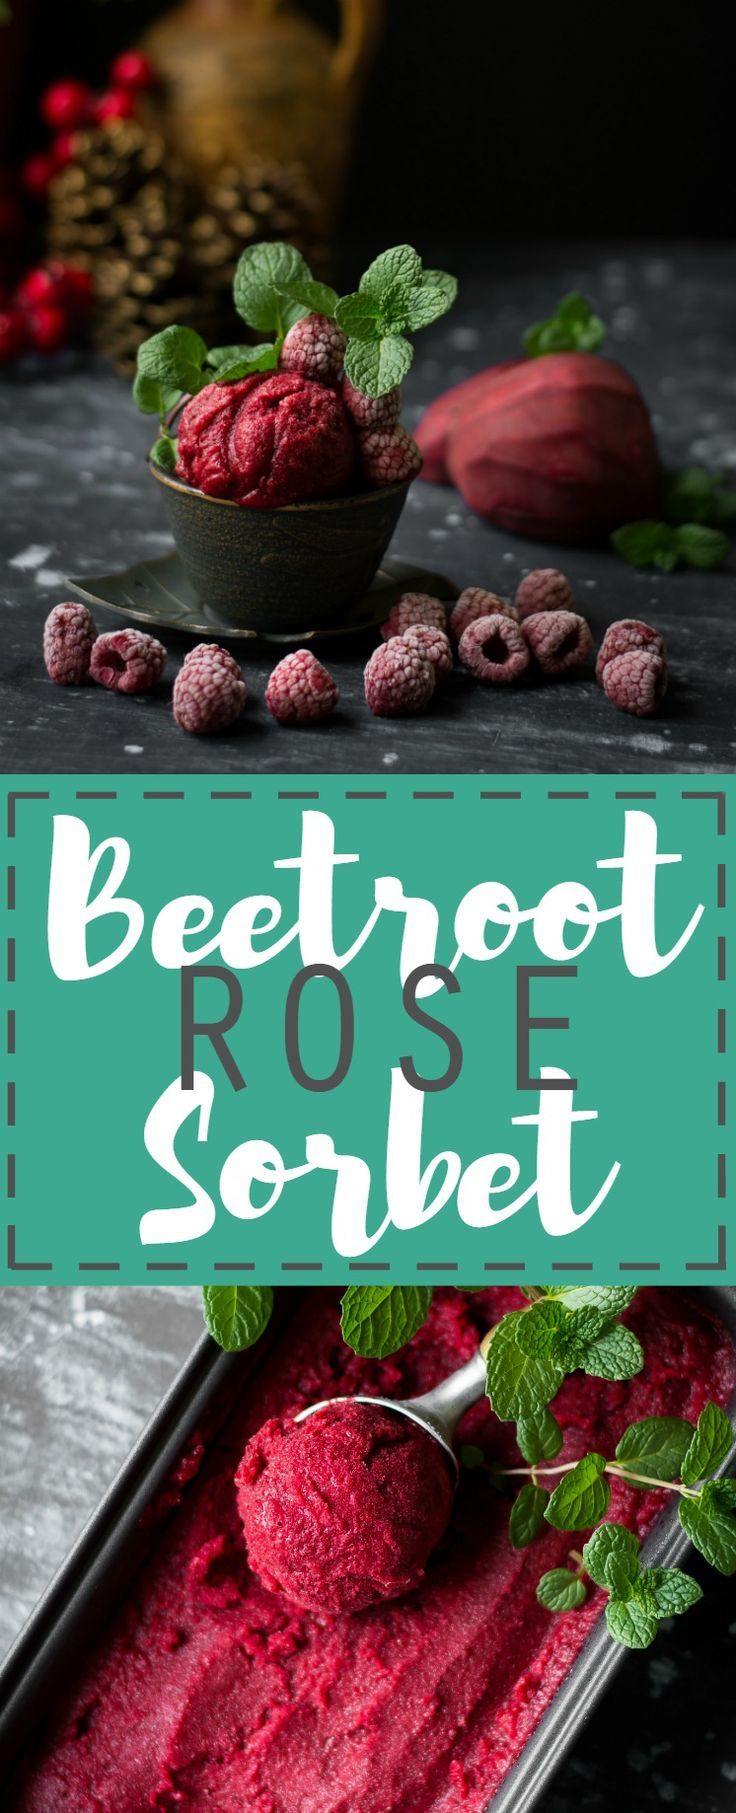 This summer, if all other sorbets have tired you, refresh yourself with this fragrant Rose Beetroot Sorbet. 4 ingredients. Vegan. Gluten Free.